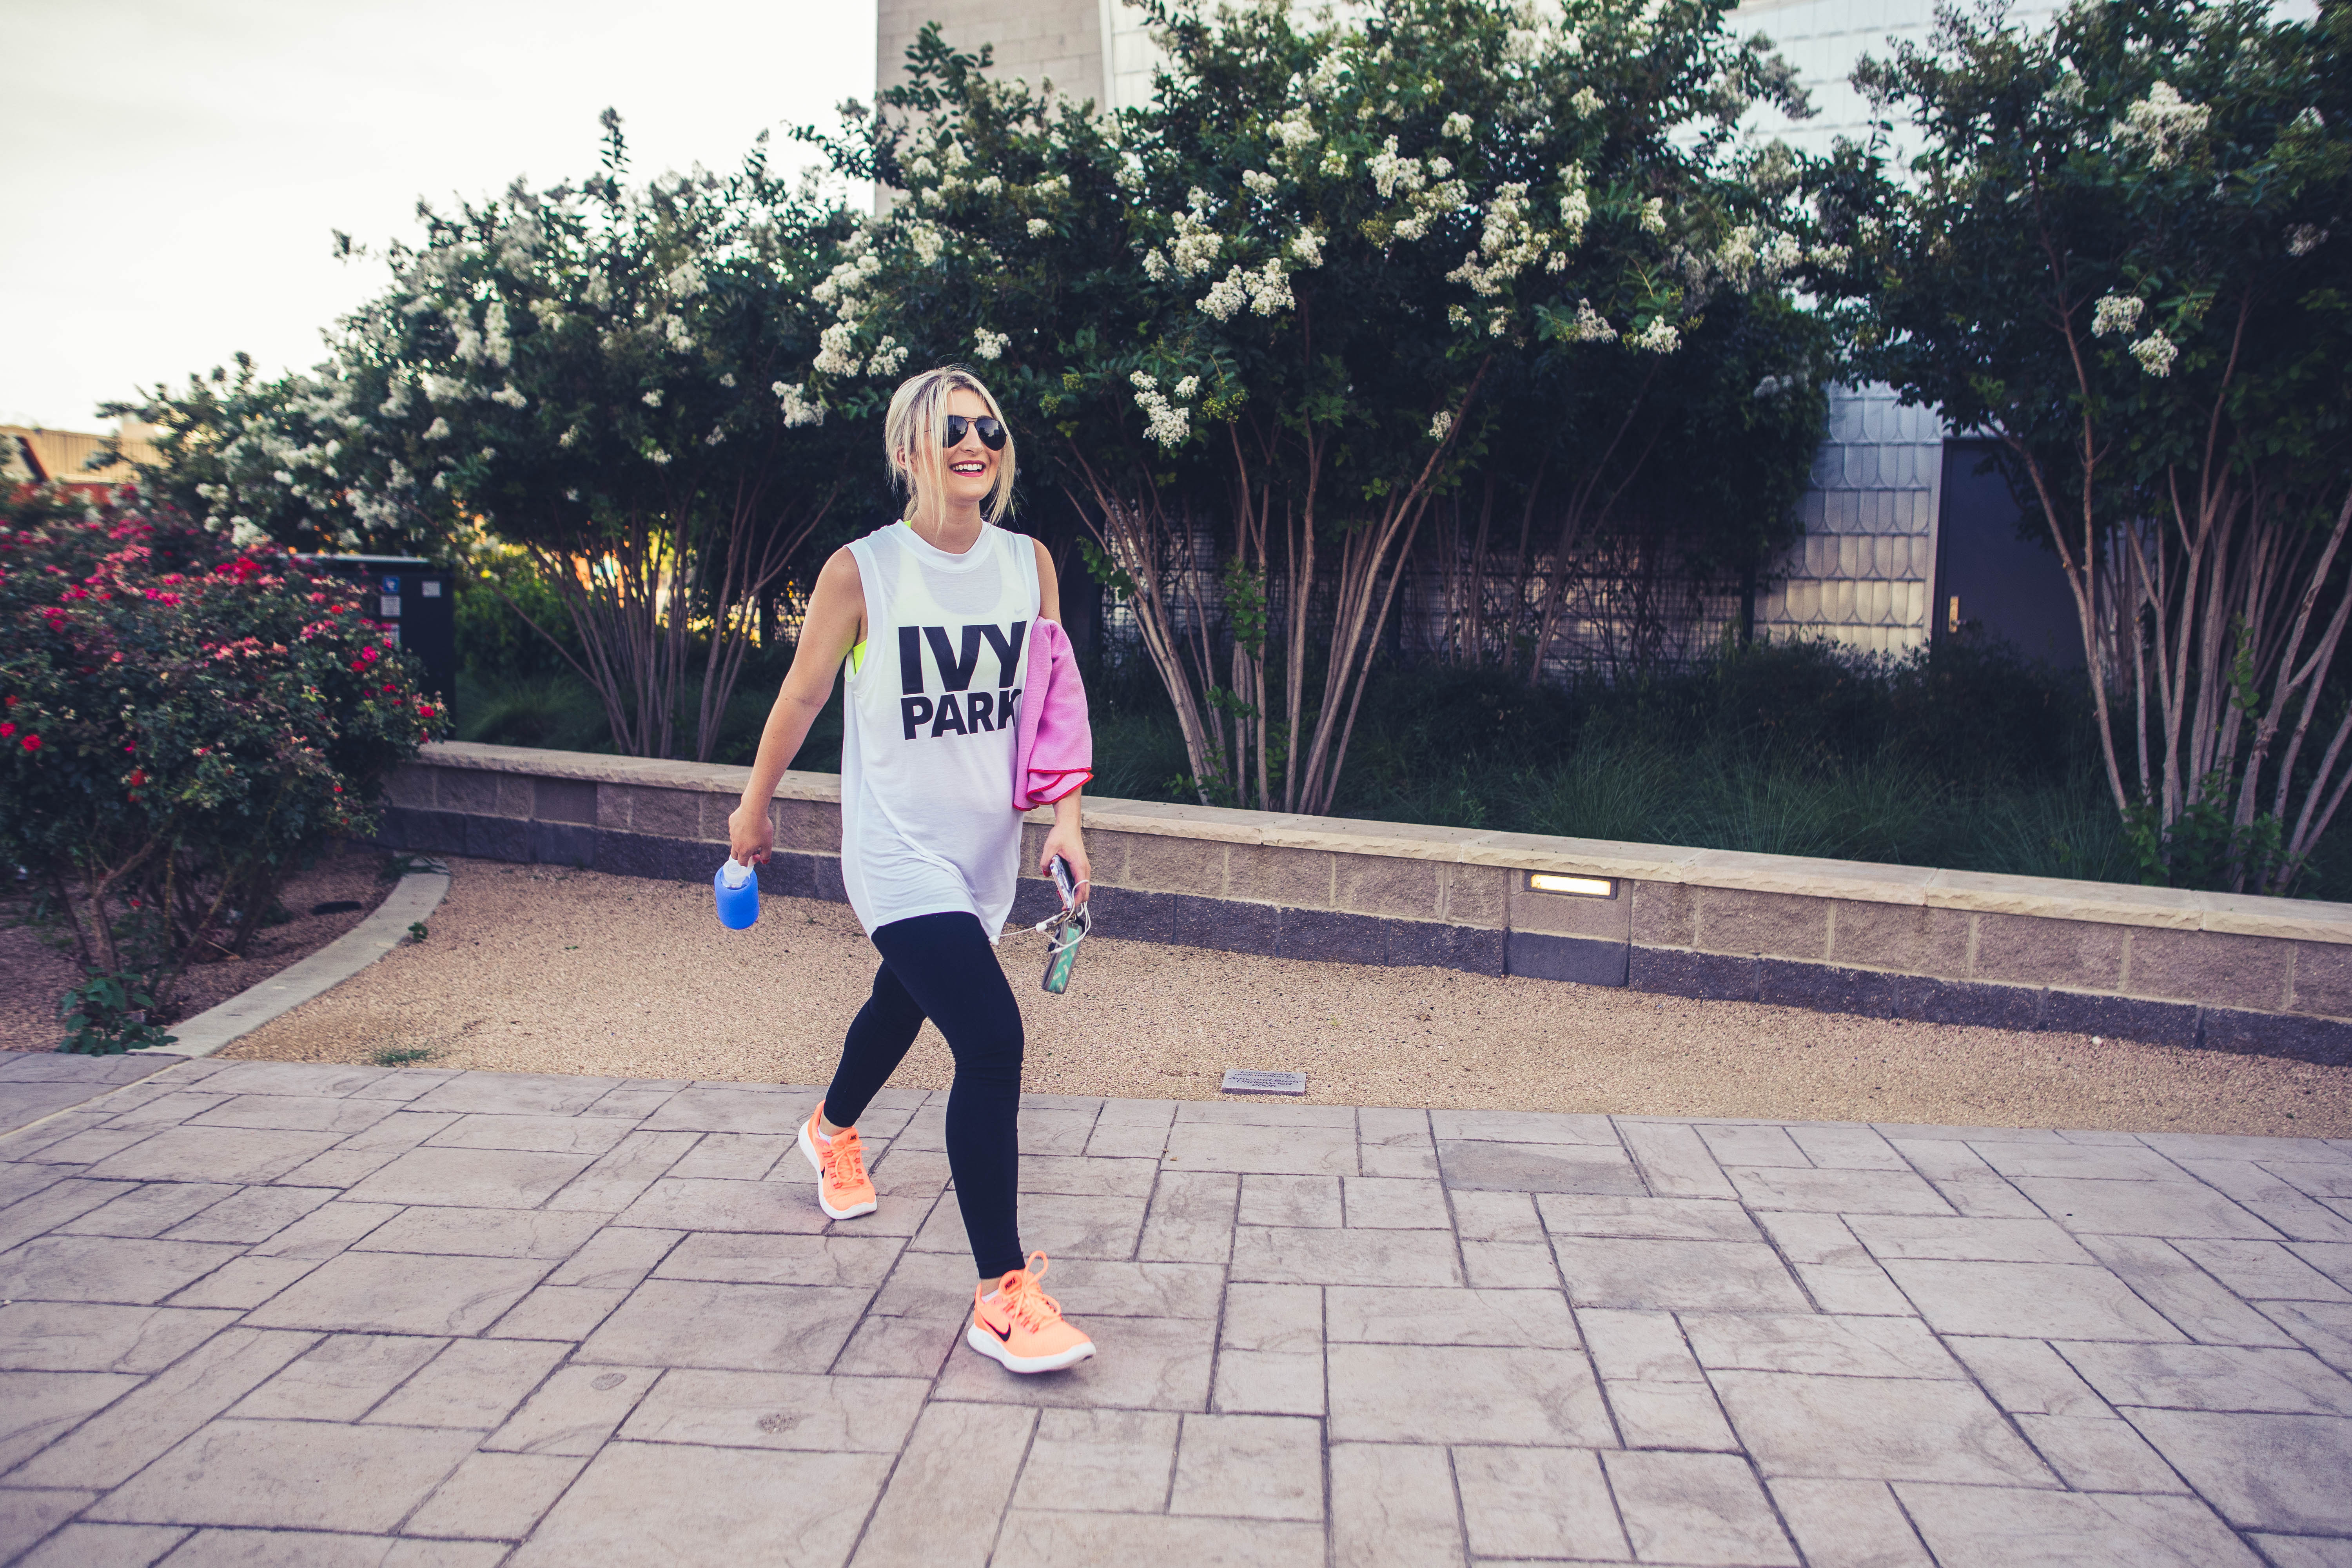 College Workout Routine for Summer | West Texas | Audrey Madison Stowe lifestyle and fashion blogger